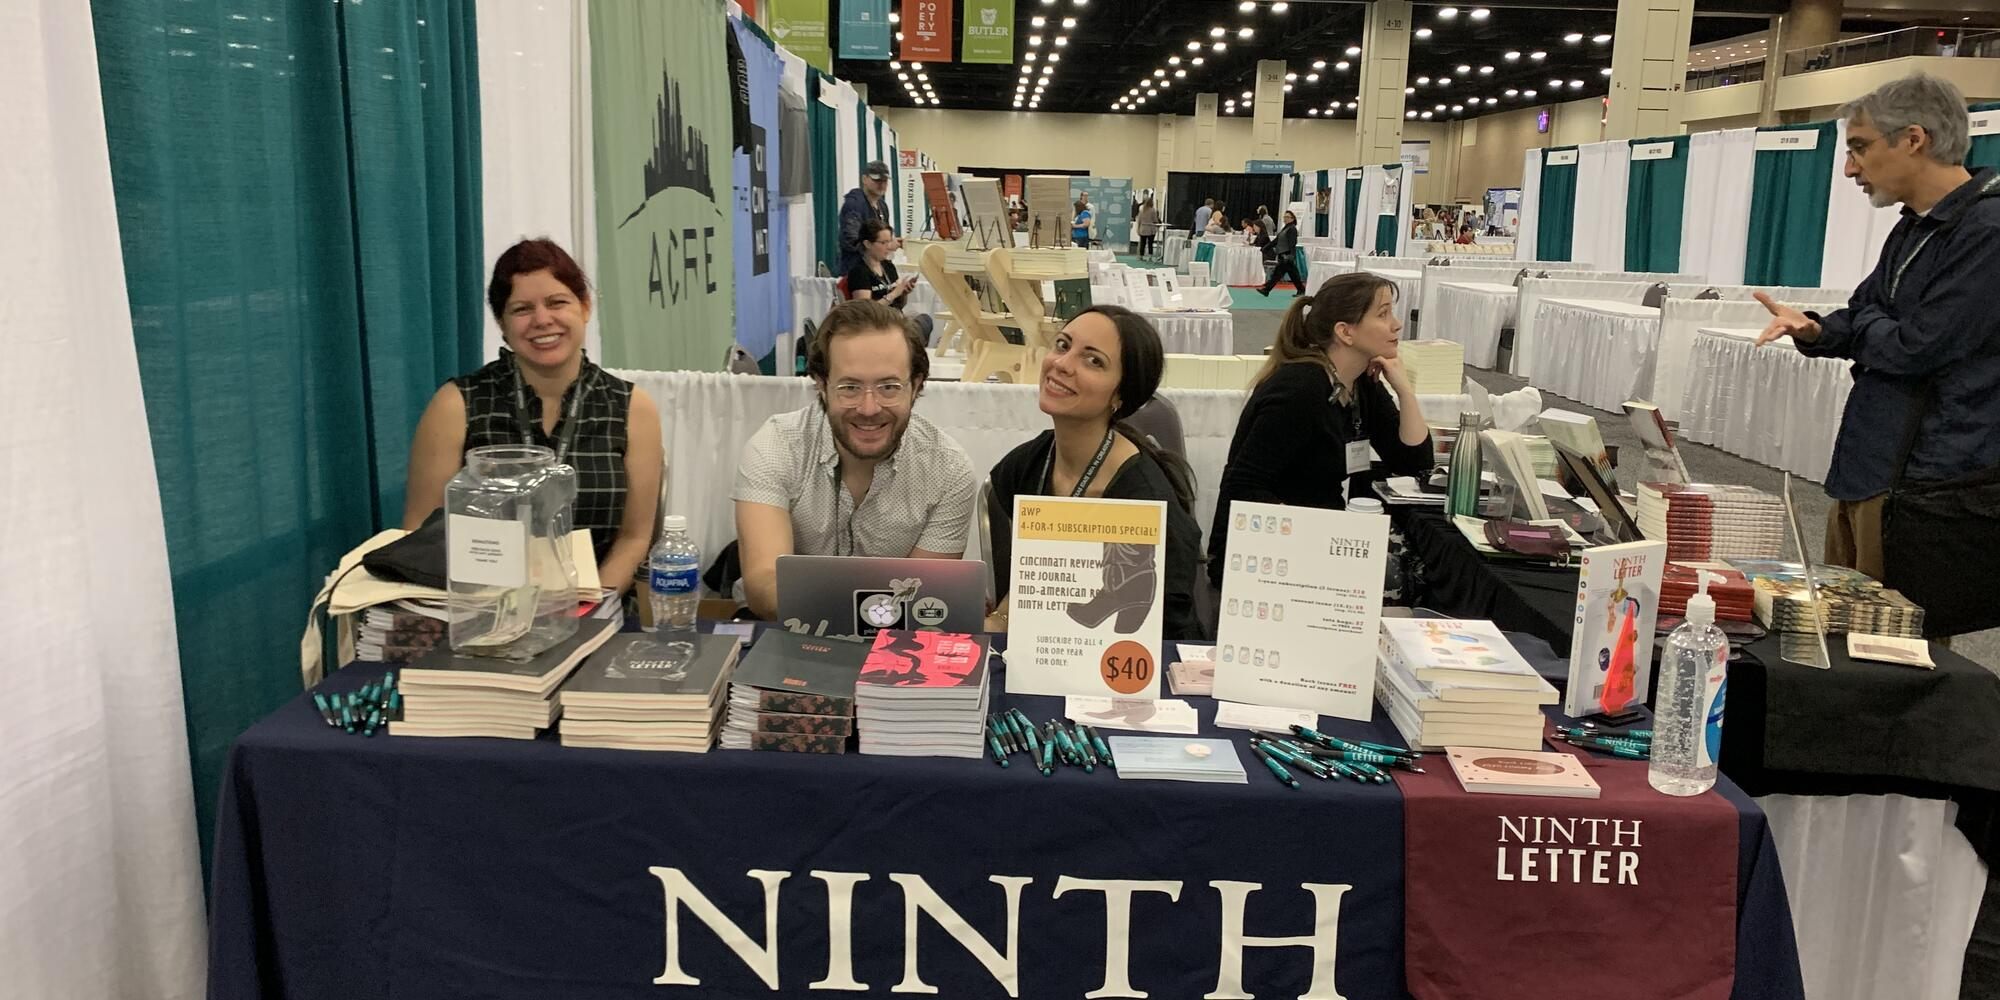 MFA students working the Ninth Letter table at AWP 2020